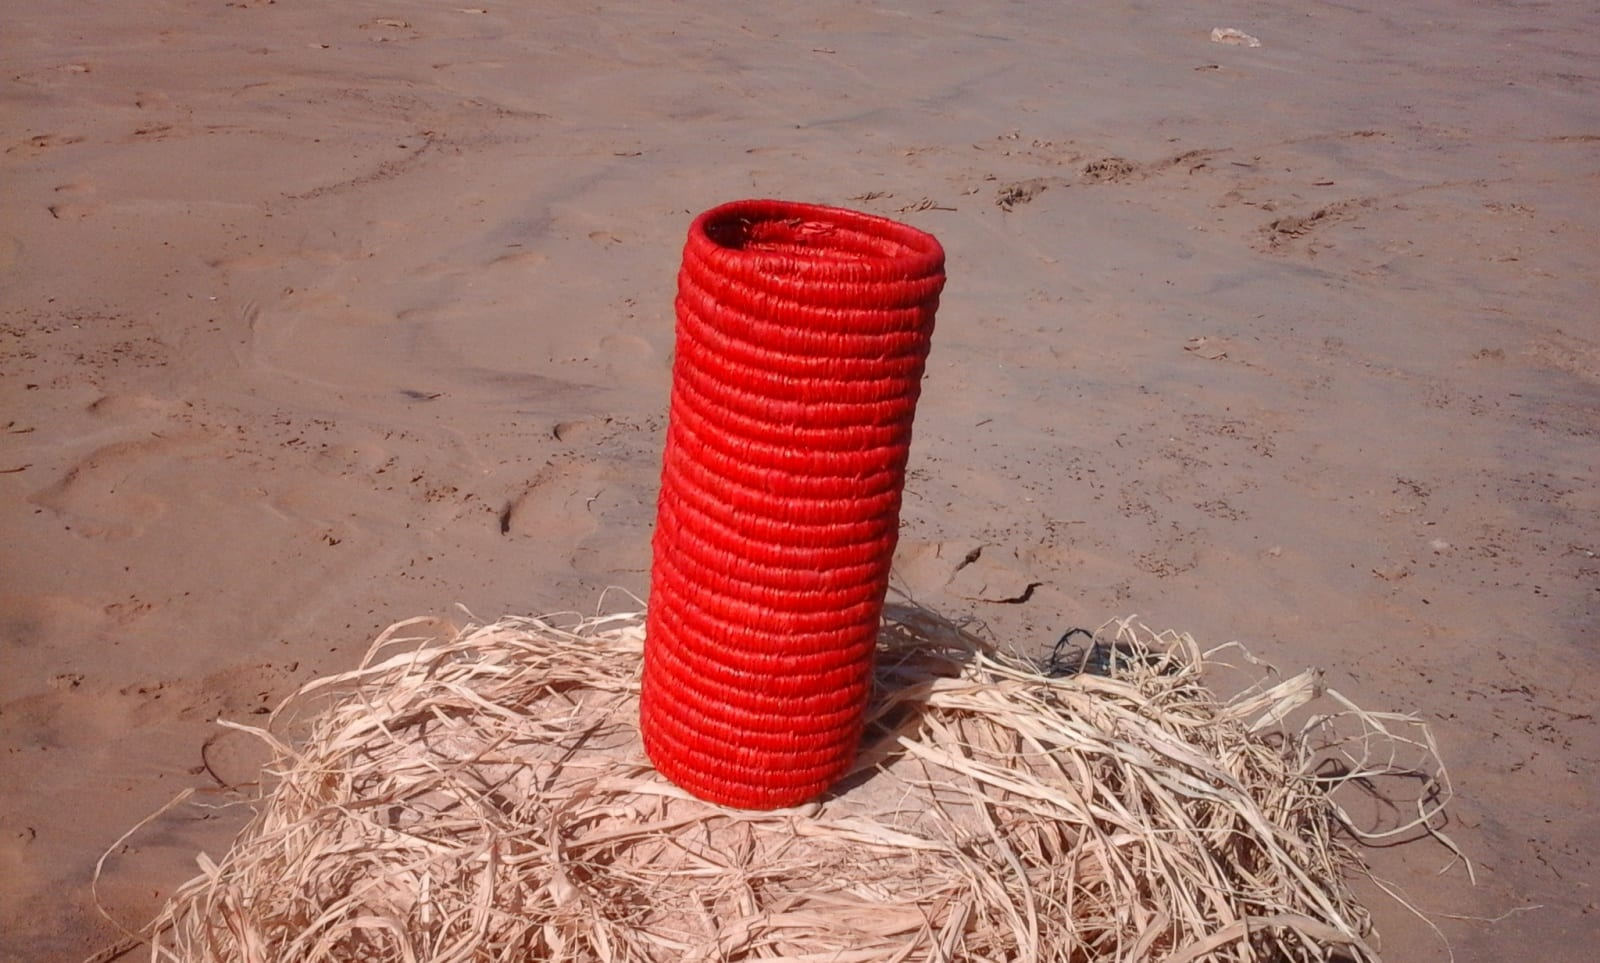 Bottle cover Dyed rafia fibers Red Morocco